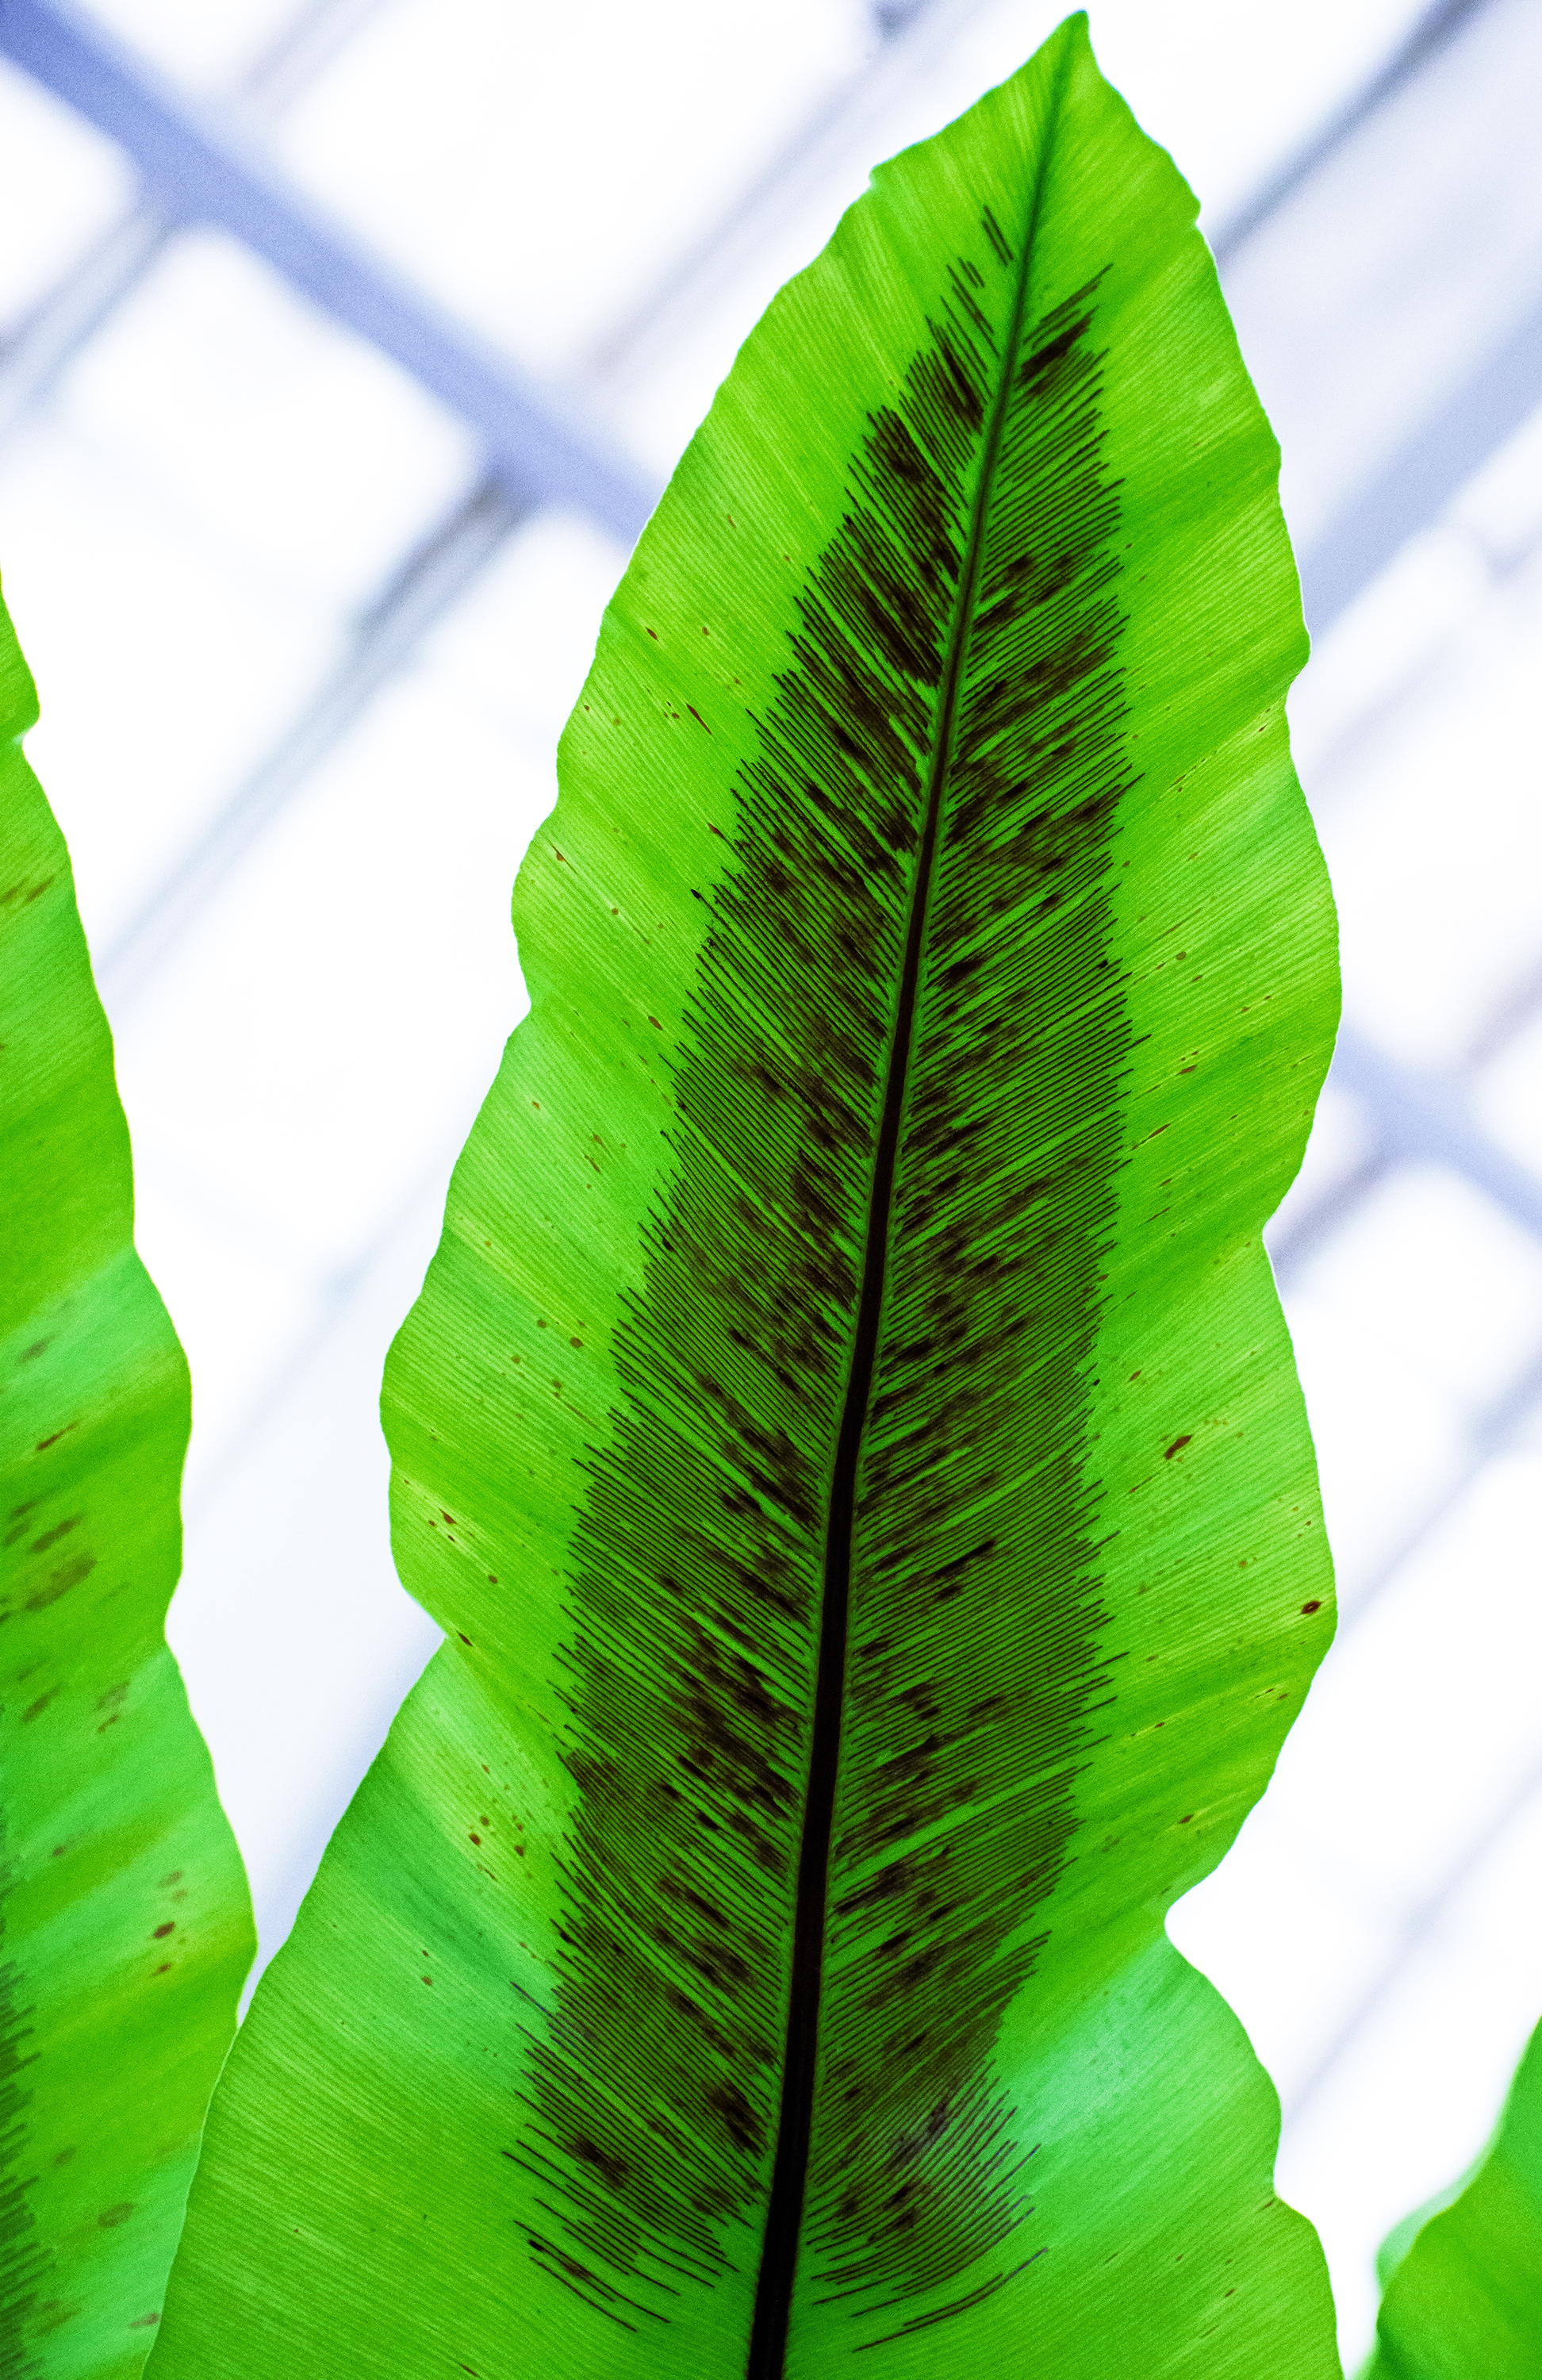 Feather in a frond